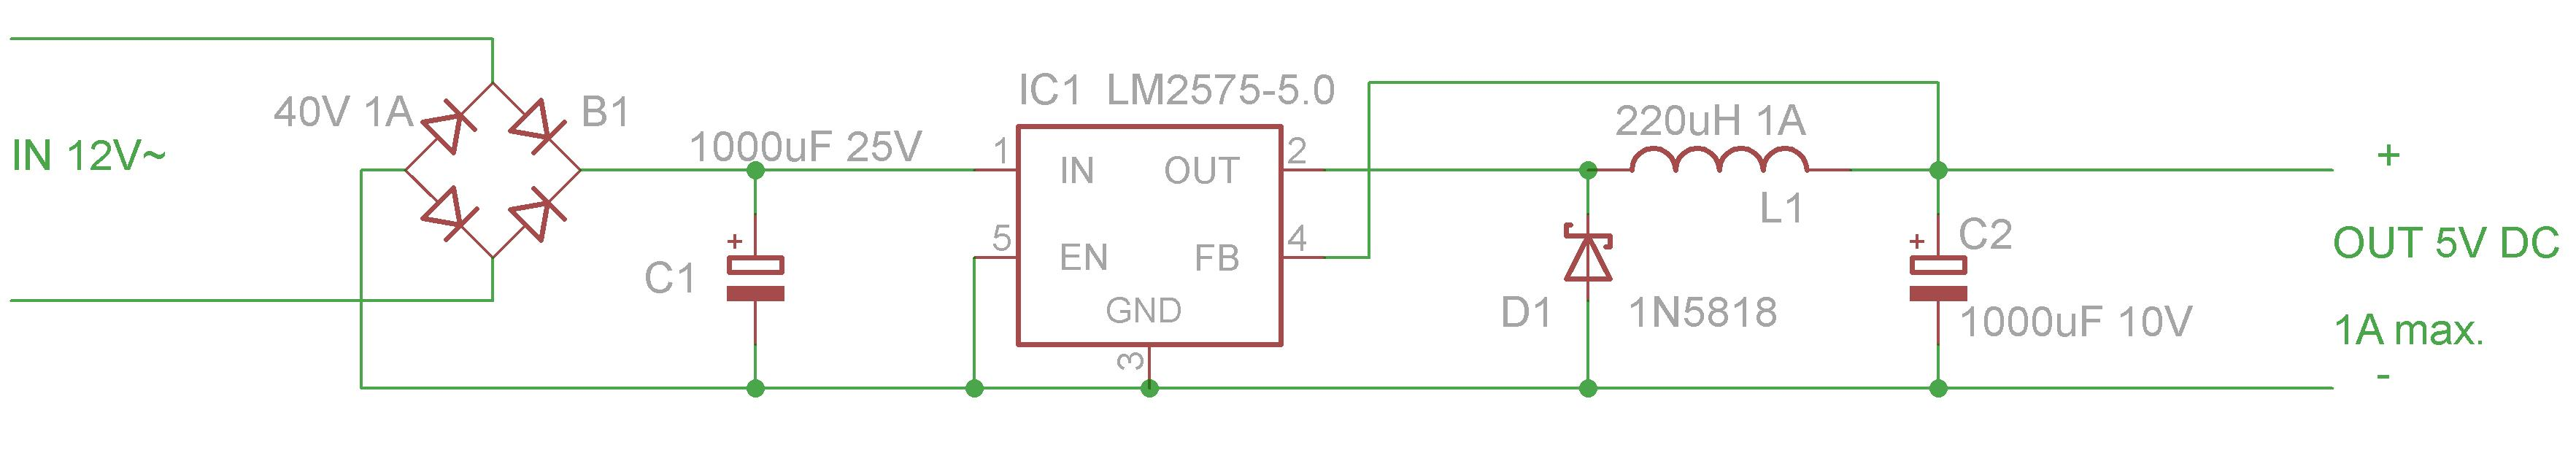 Cell Phone Circuit Diagram Schematics Starting Know About Wiring 22794 Hunter Smps 5v 1a And